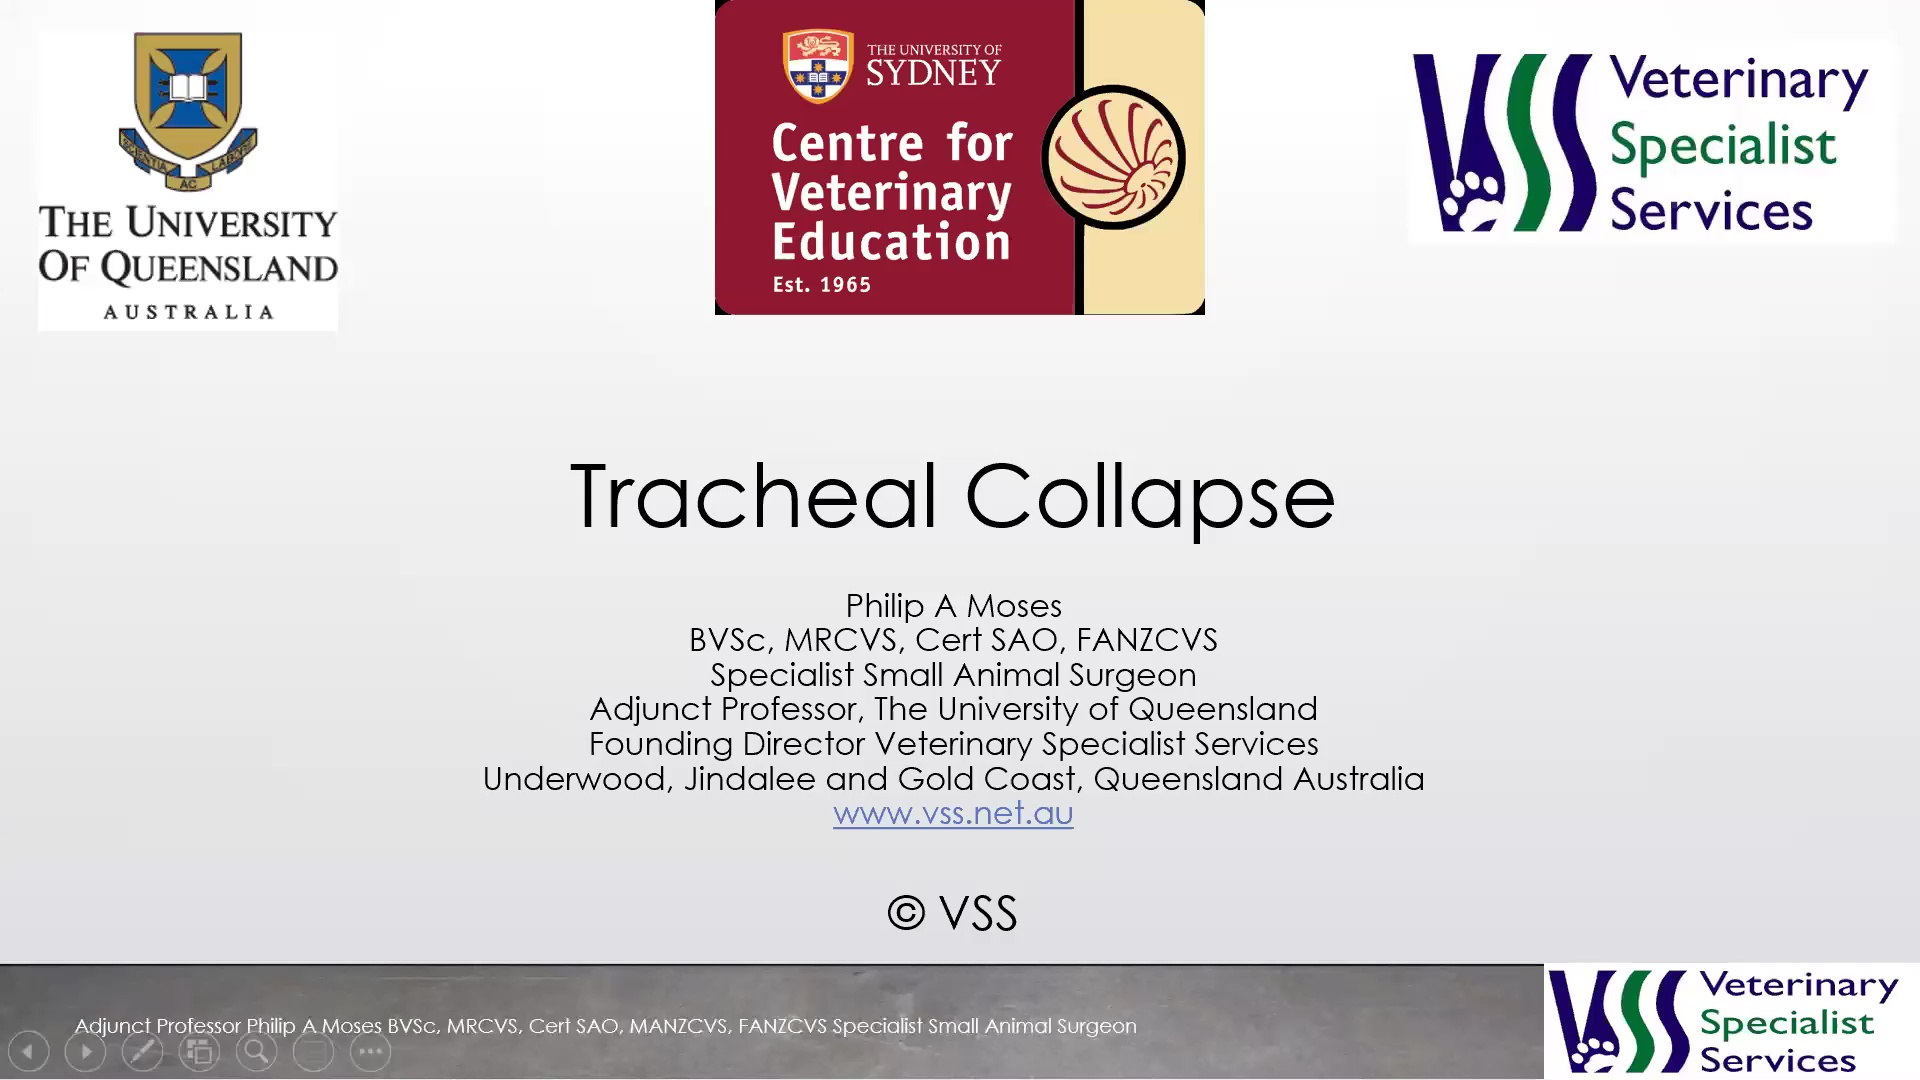 Tracheal Collapse WebinarLIVE!